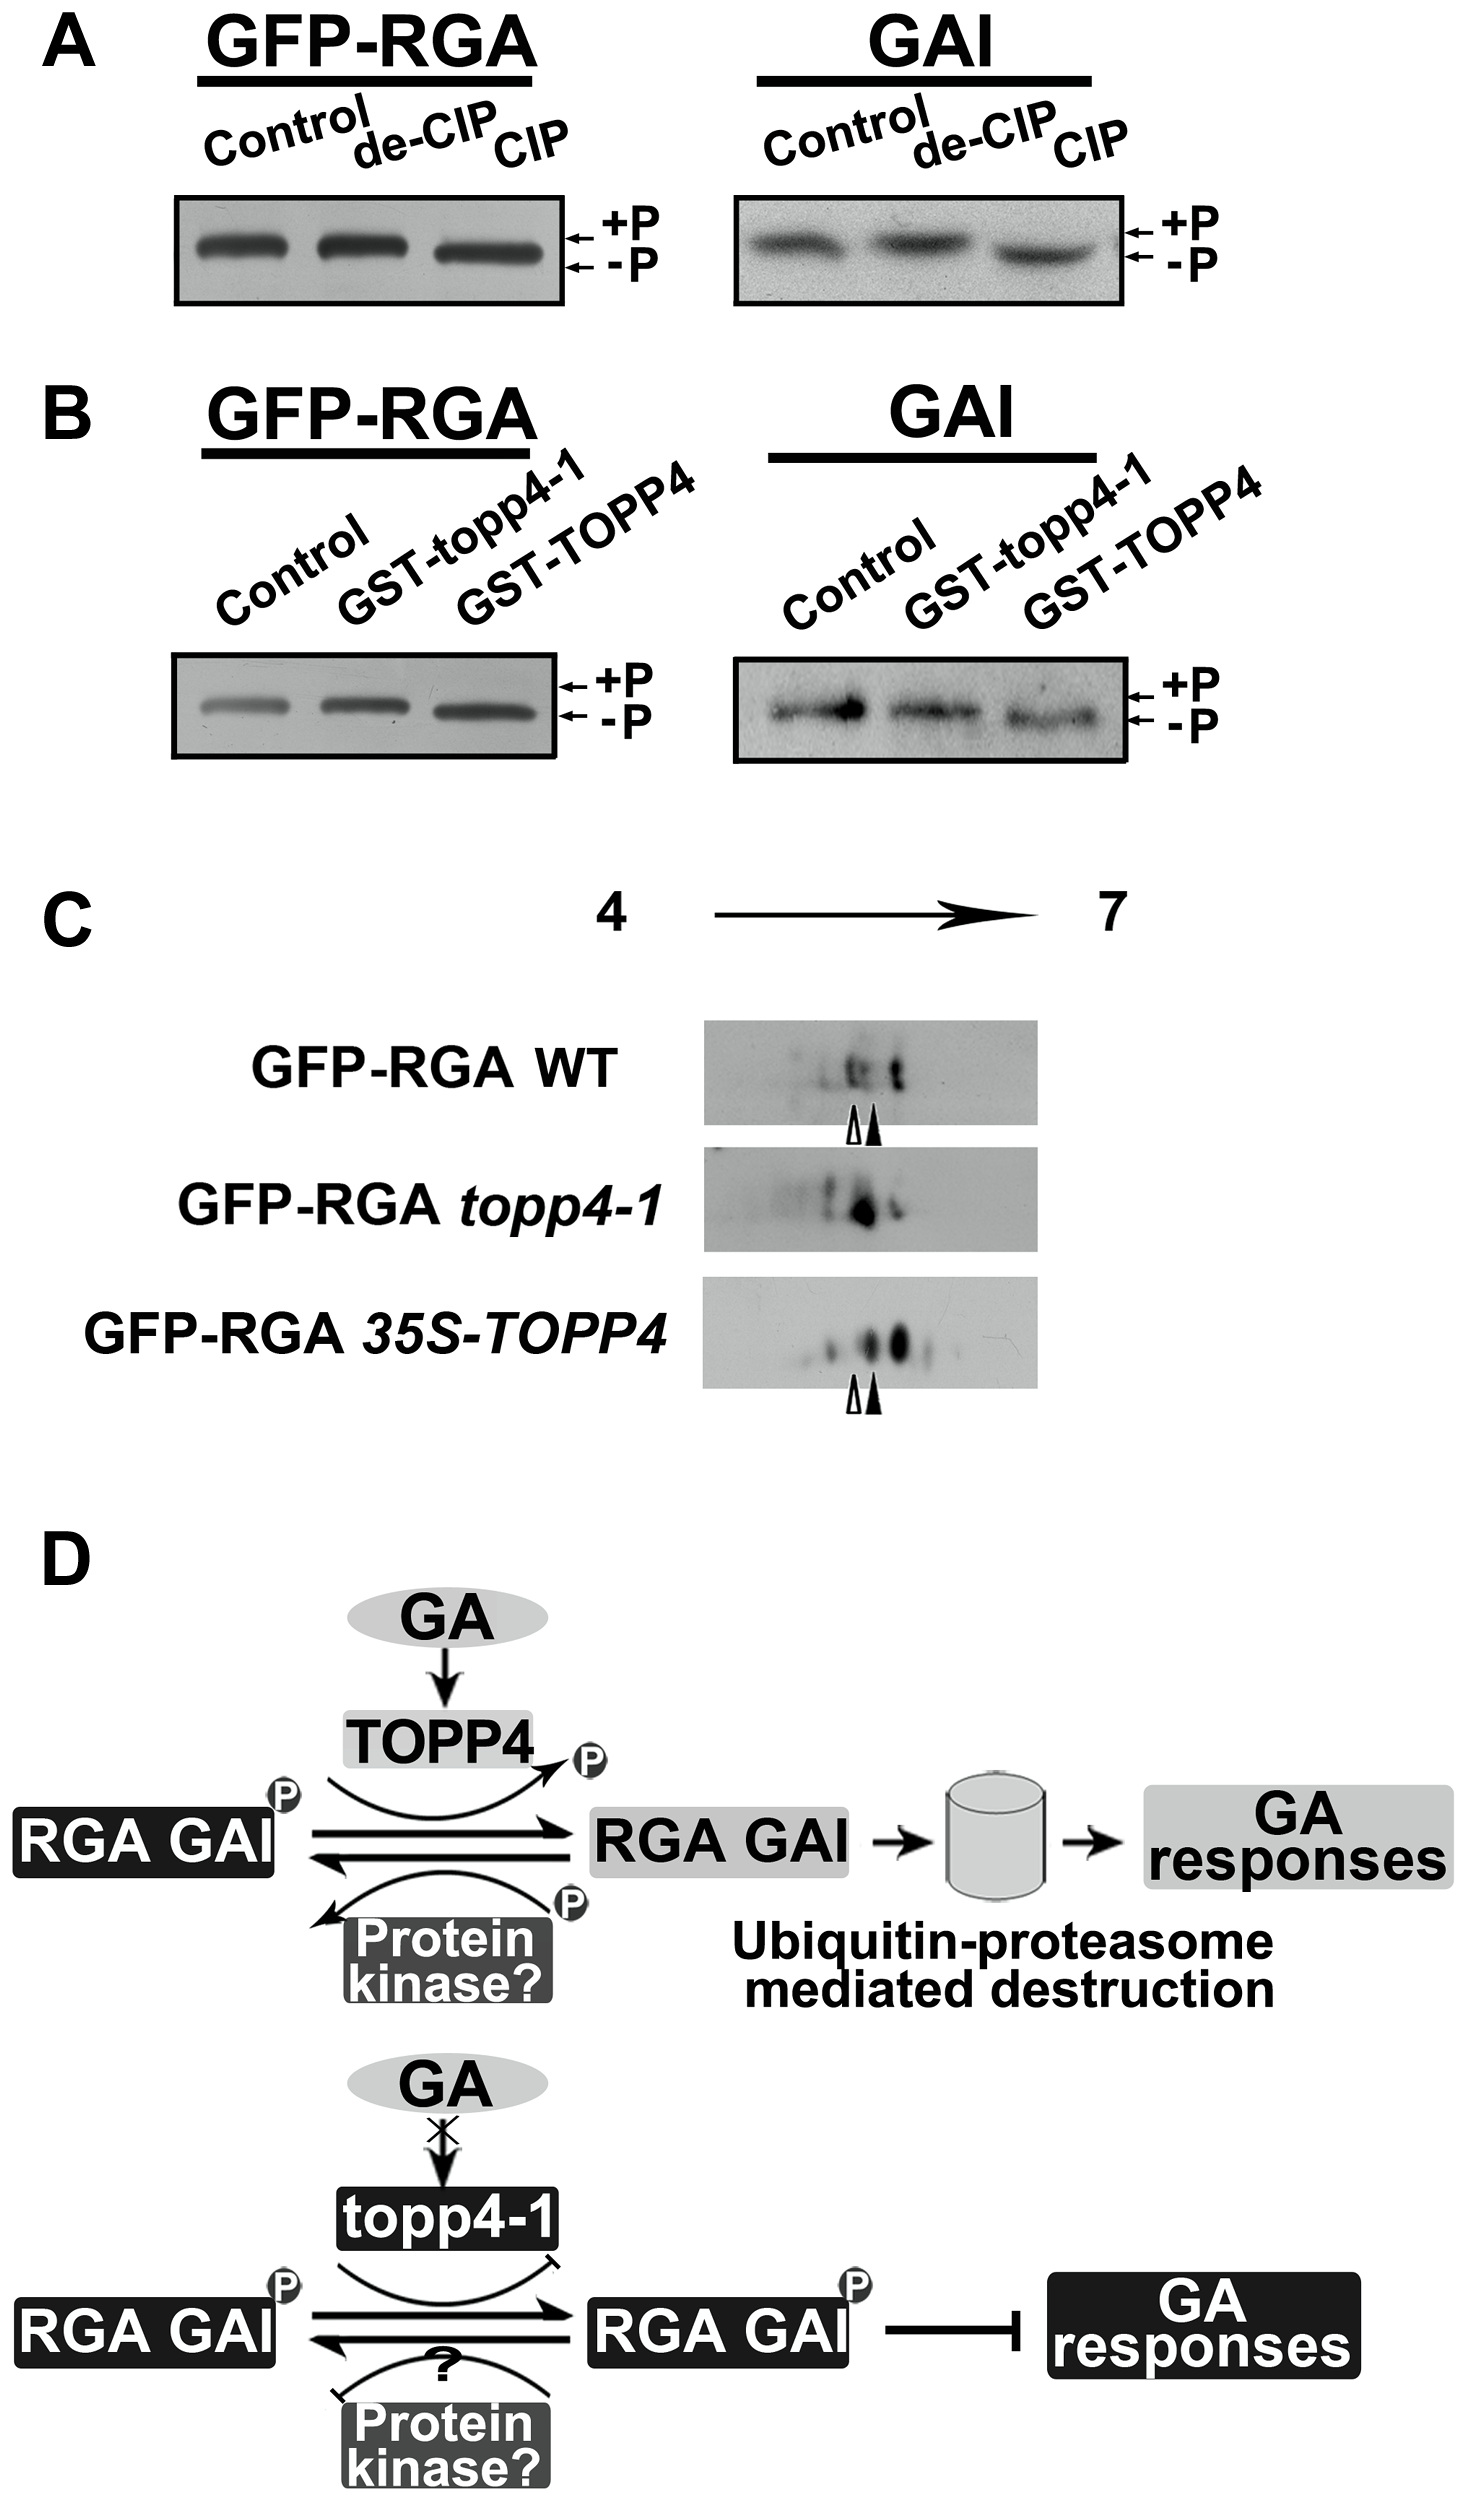 DELLA proteins are direct substrates of TOPP4.